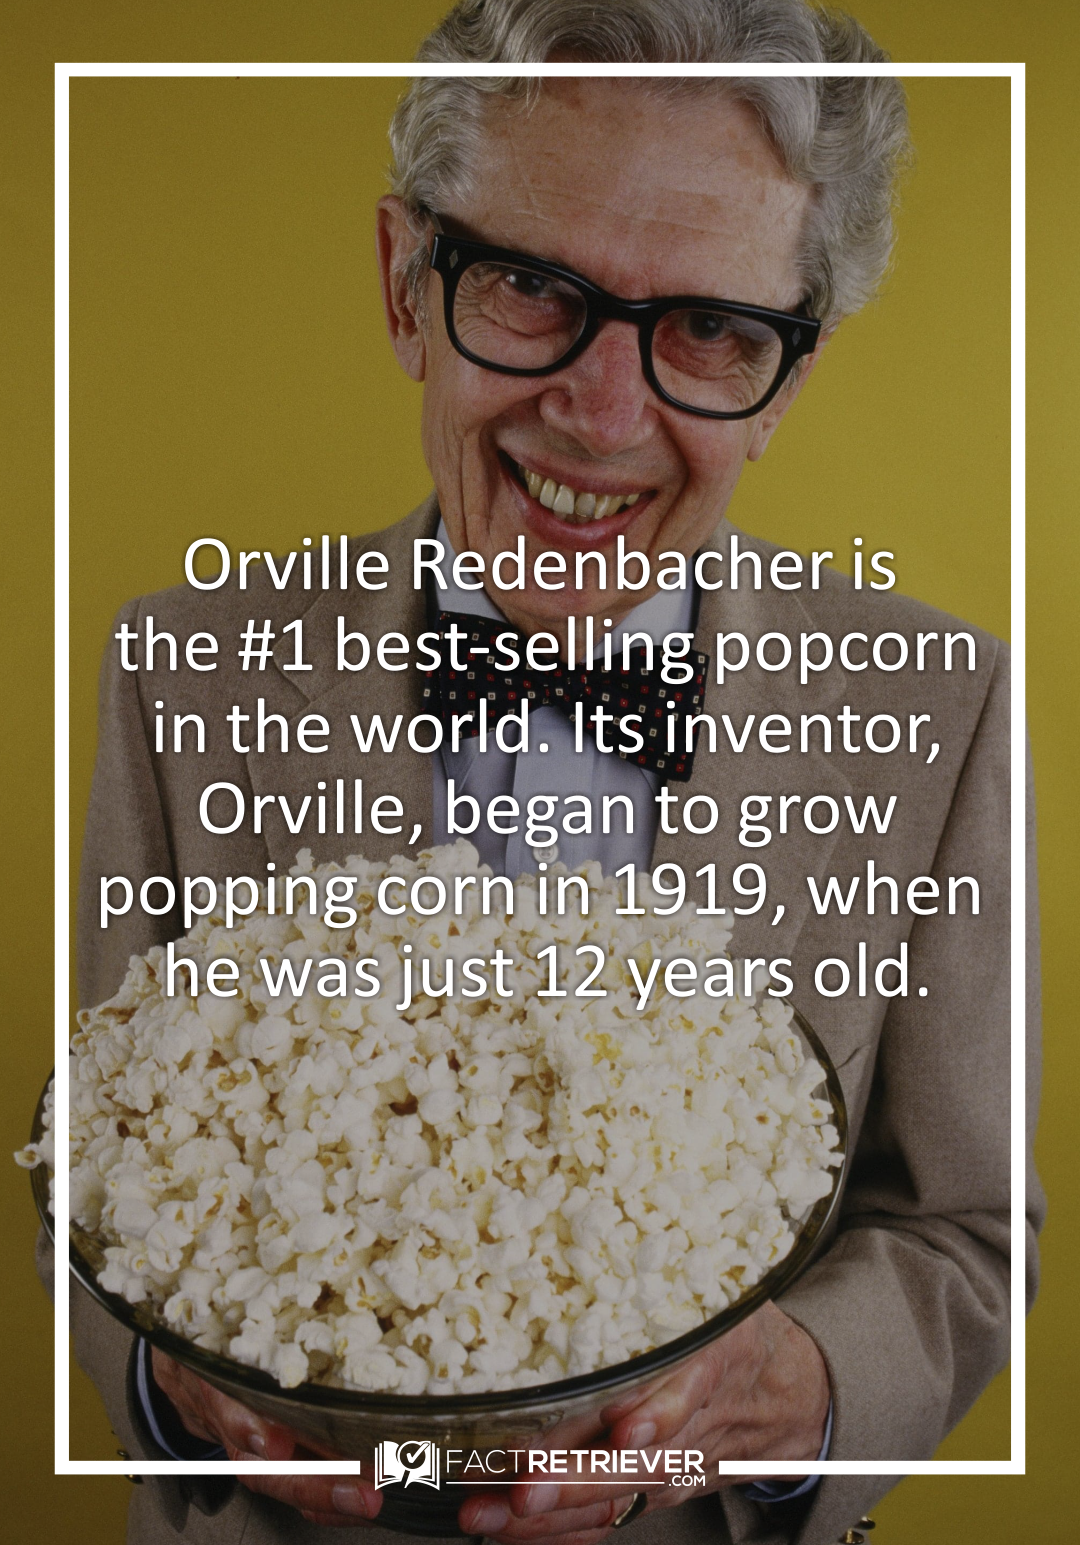 His Trade Marked Outfit Included Horn Rimmed Glasses And A Bow Tie Popcorn Facts Facts Popcorn